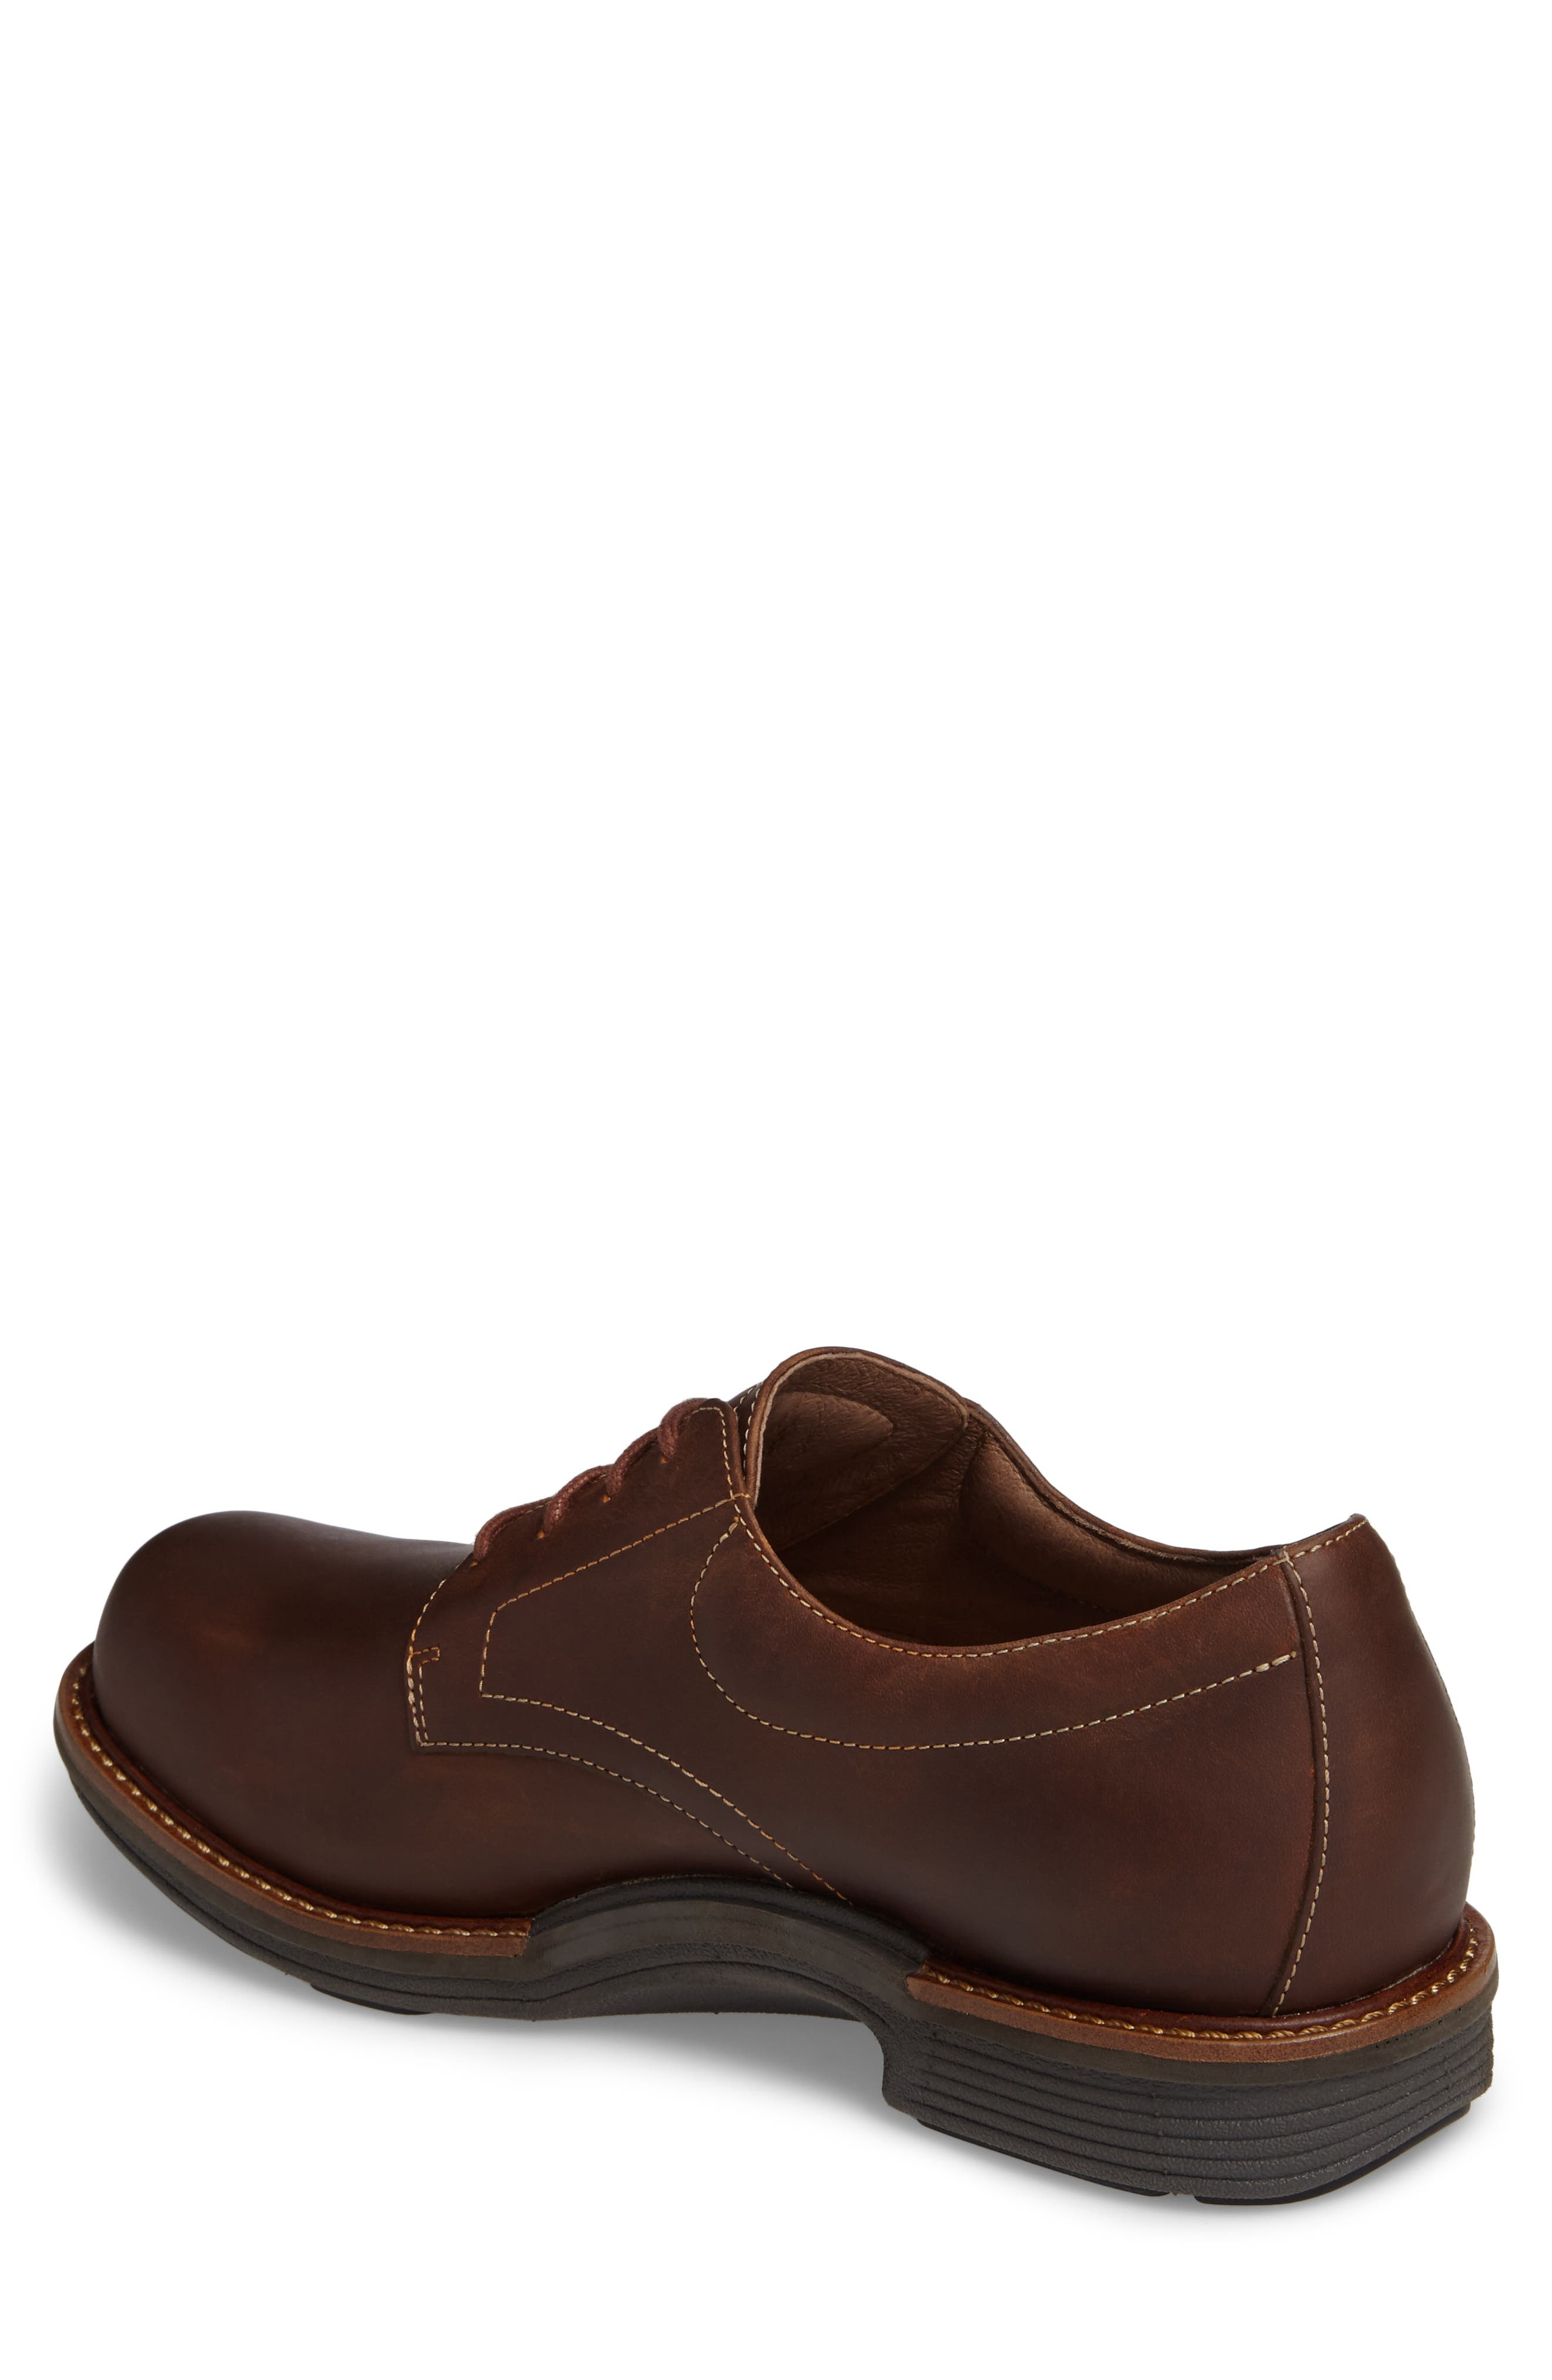 'Josh' Plain Toe Derby,                             Alternate thumbnail 2, color,                             BROWN PULL-UP LEATHER